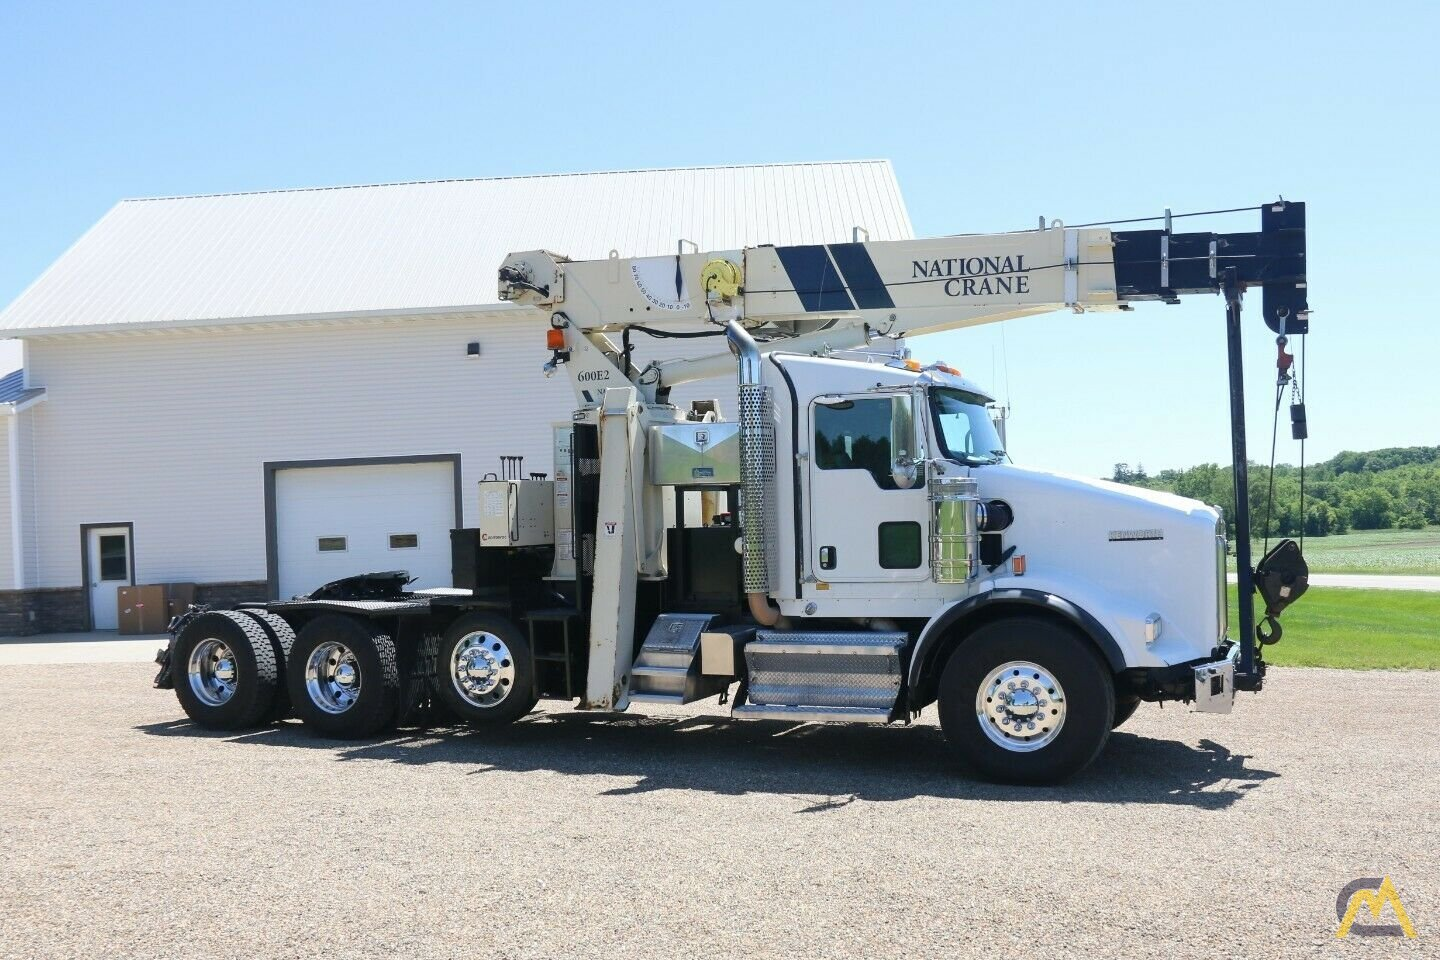 National 600E2 Series Model 649E2  20-ton Tractor Mount Boom Truck on Kenworth T800 2